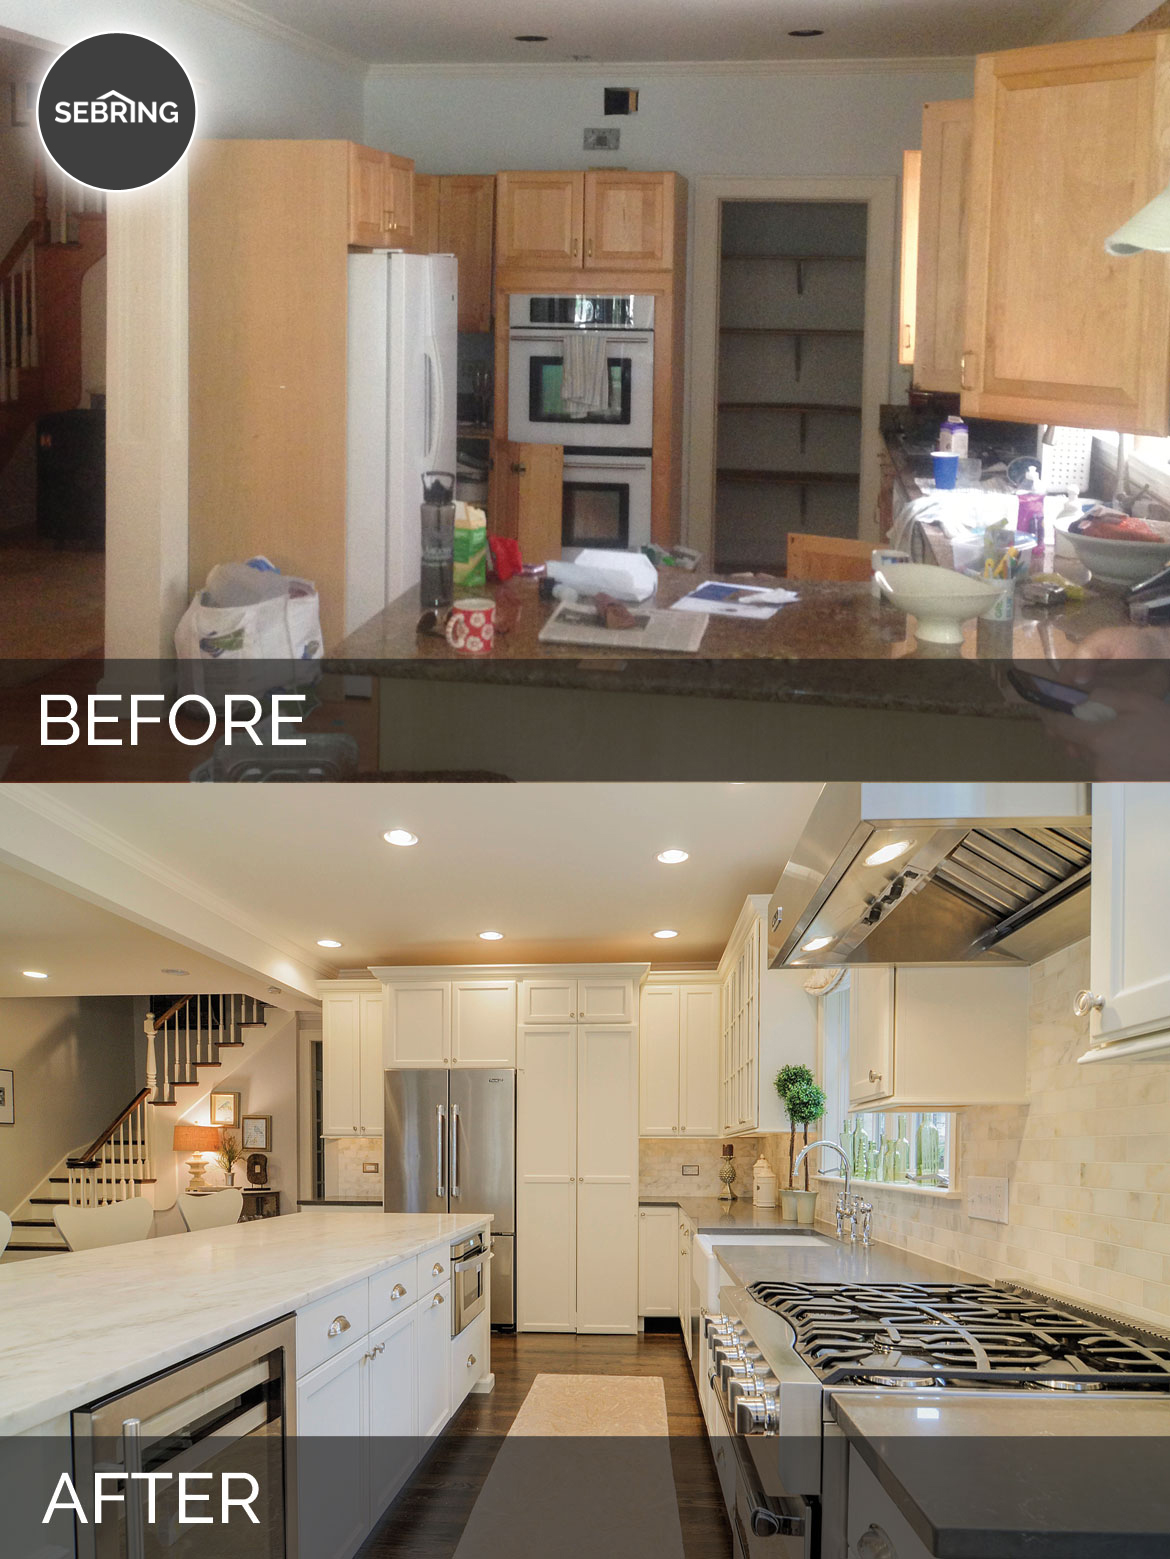 Before & After Kitchen Downers Grove - Sebring Design Build